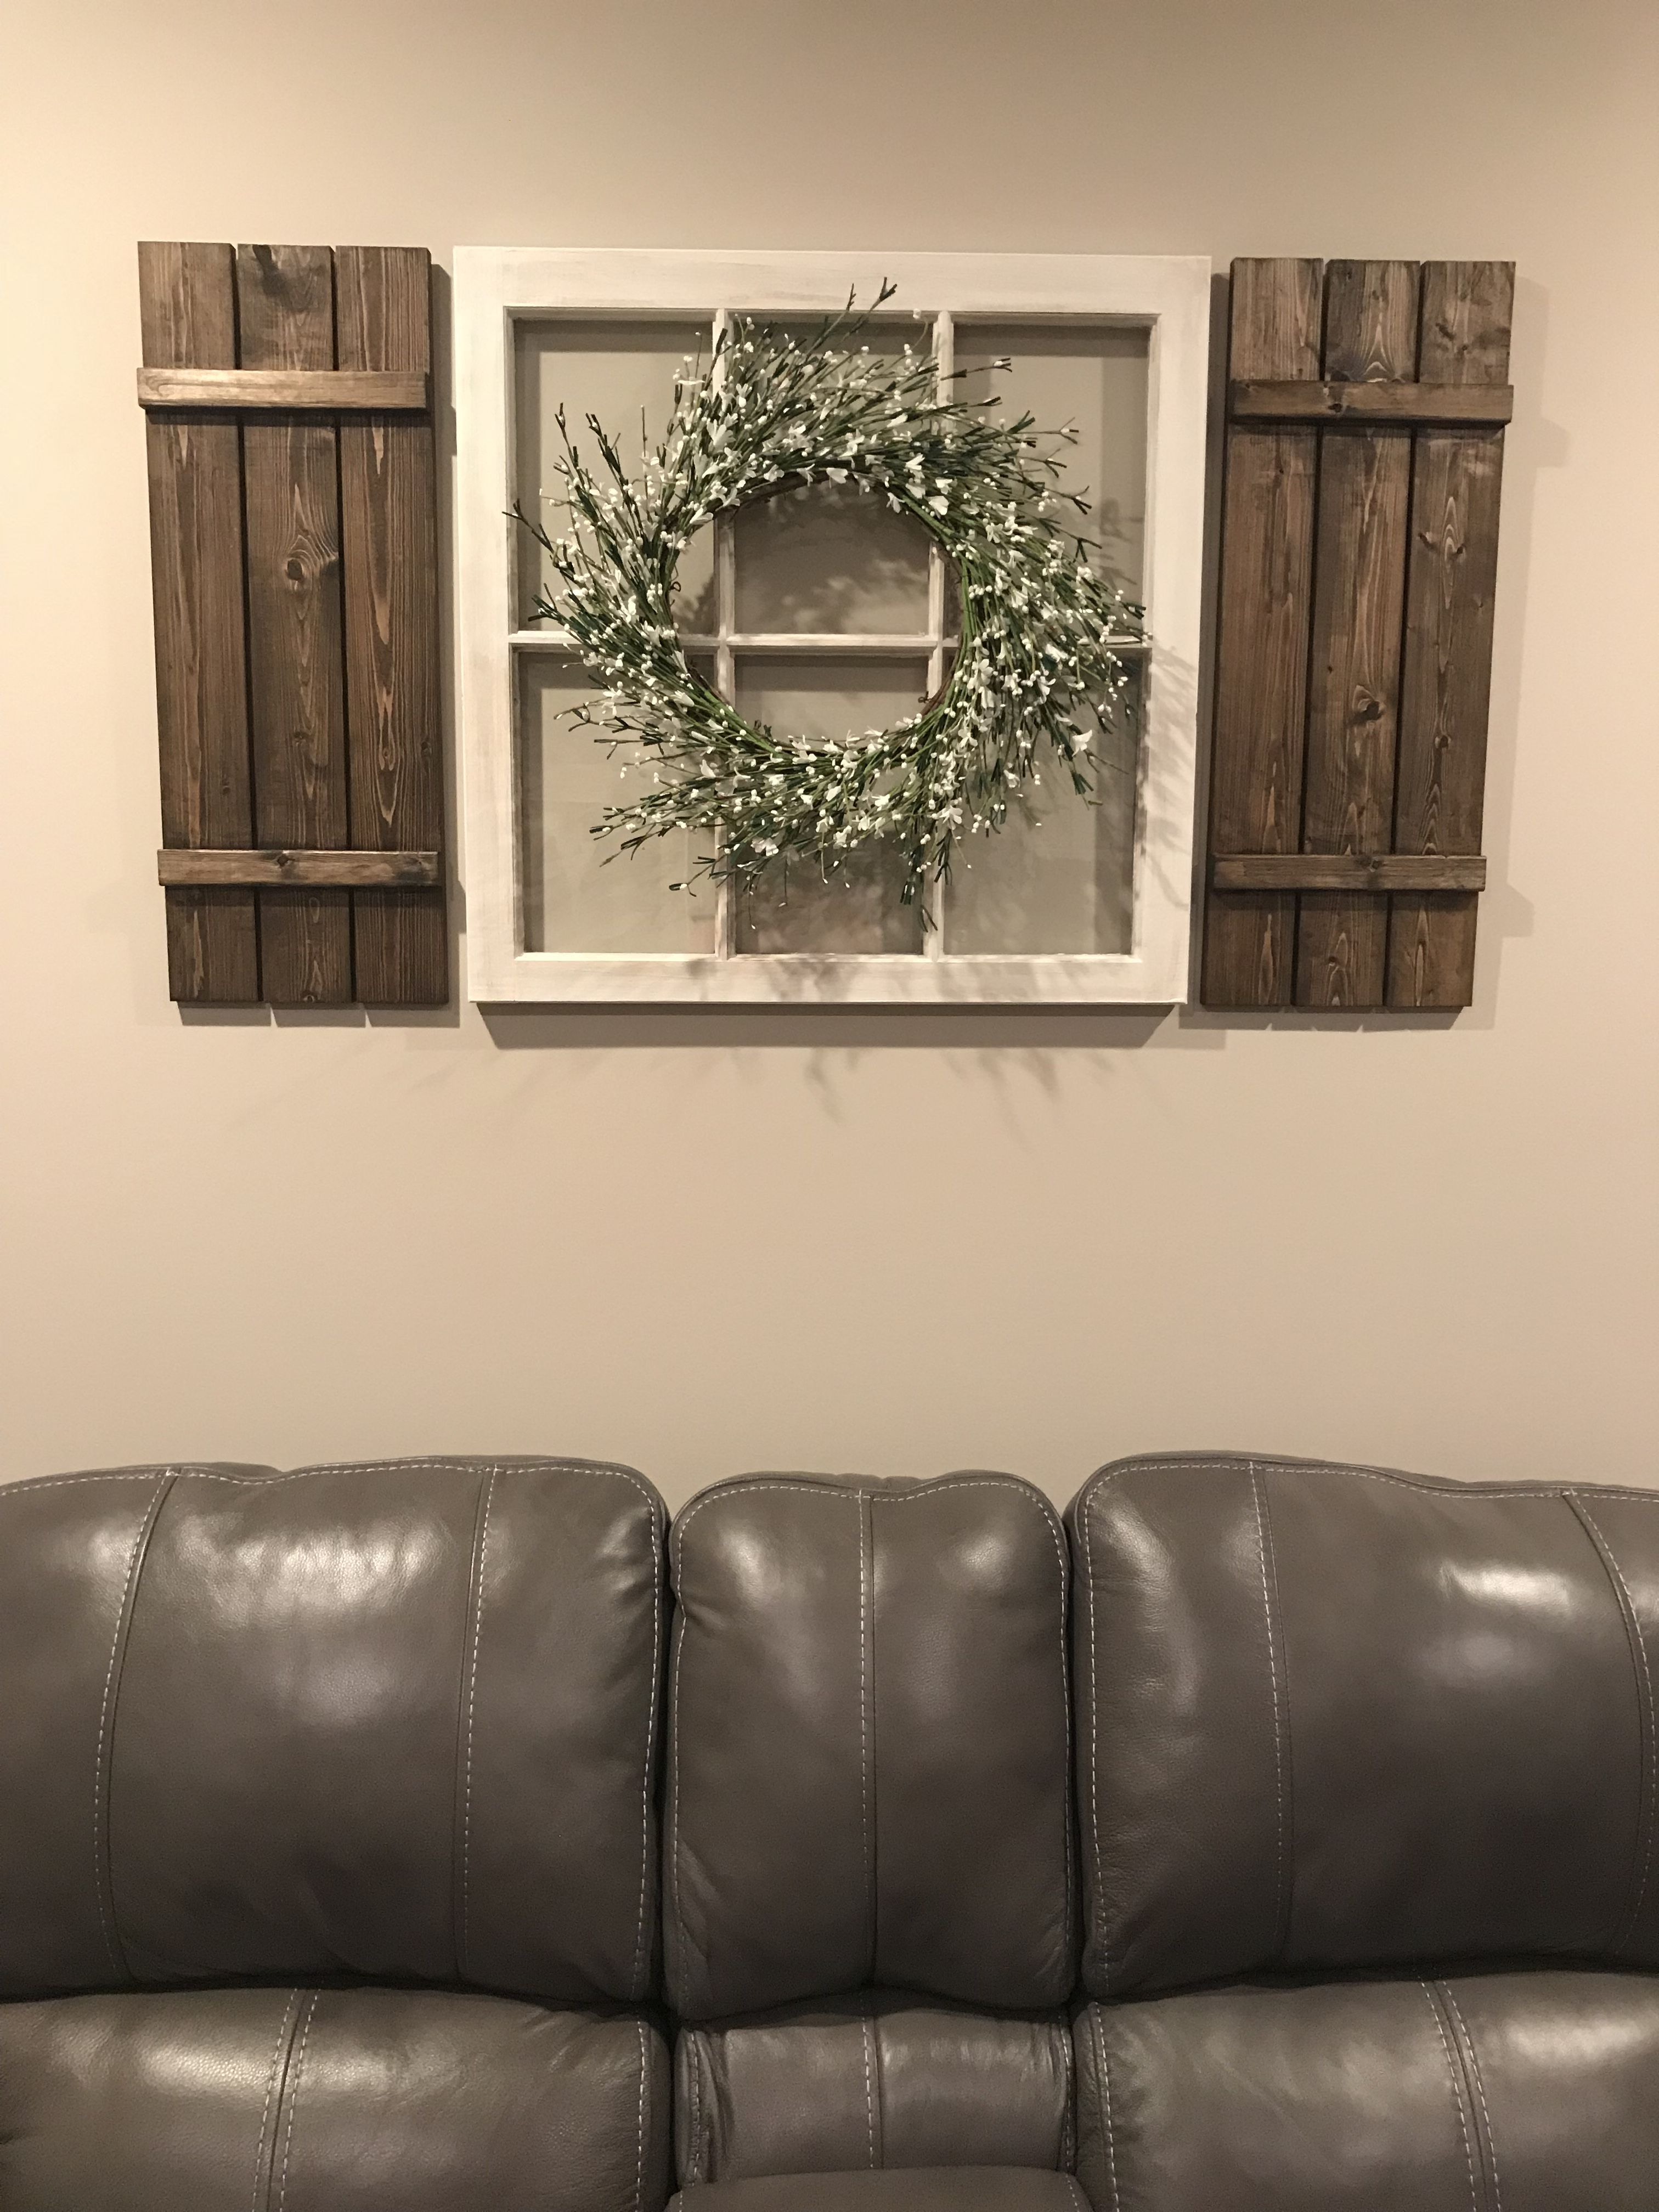 Diy Window Pane And Shutters Home Farmhouse Decor! | Home In With Shutter Window Hanging Wall Decor (View 16 of 30)